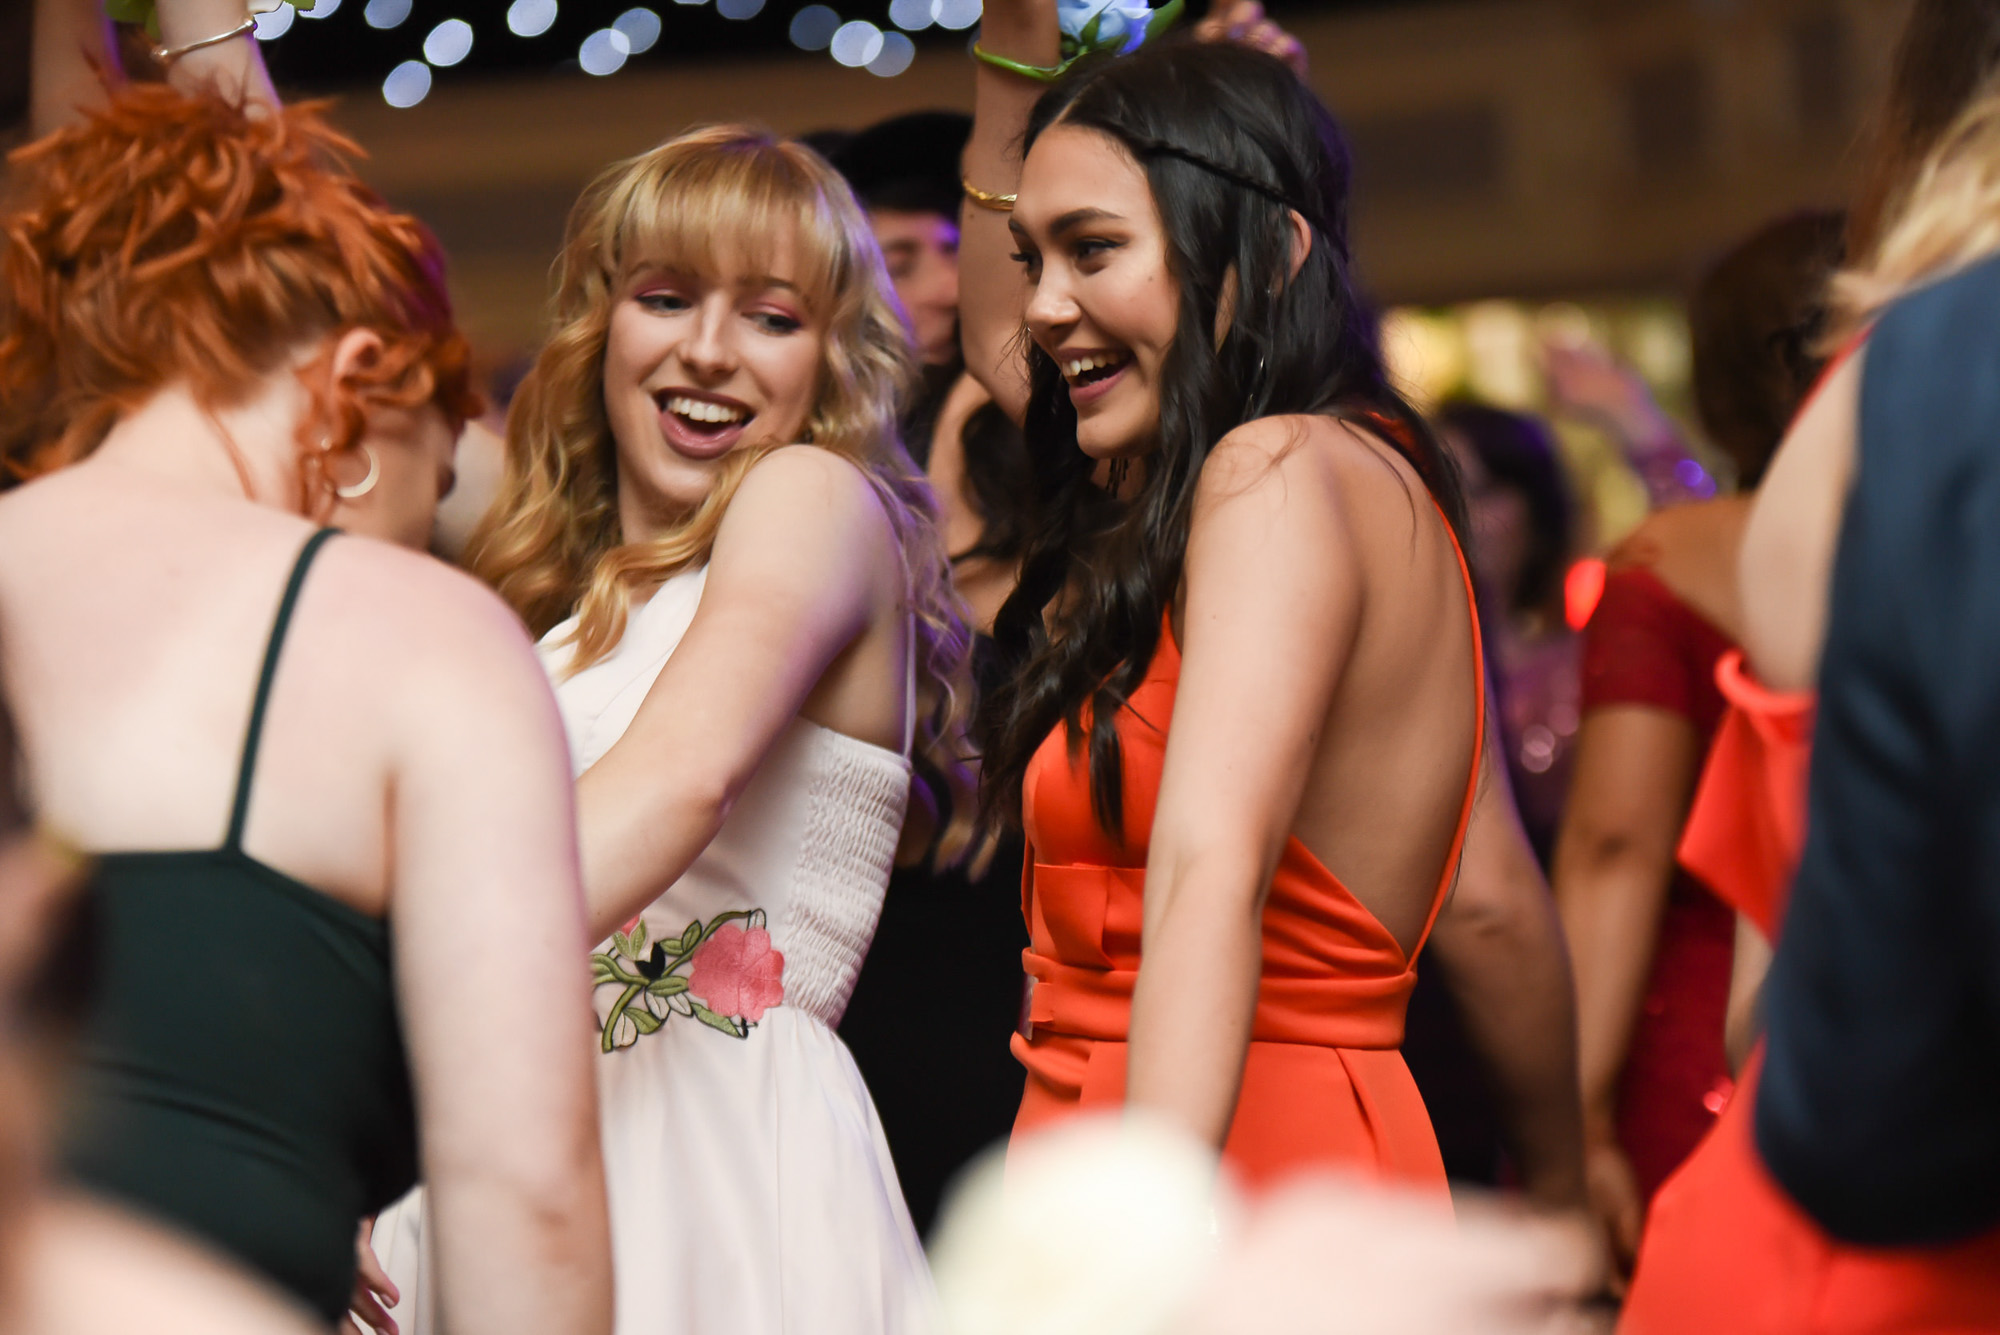 UCLAN_MT_BALL_2019_467.jpg